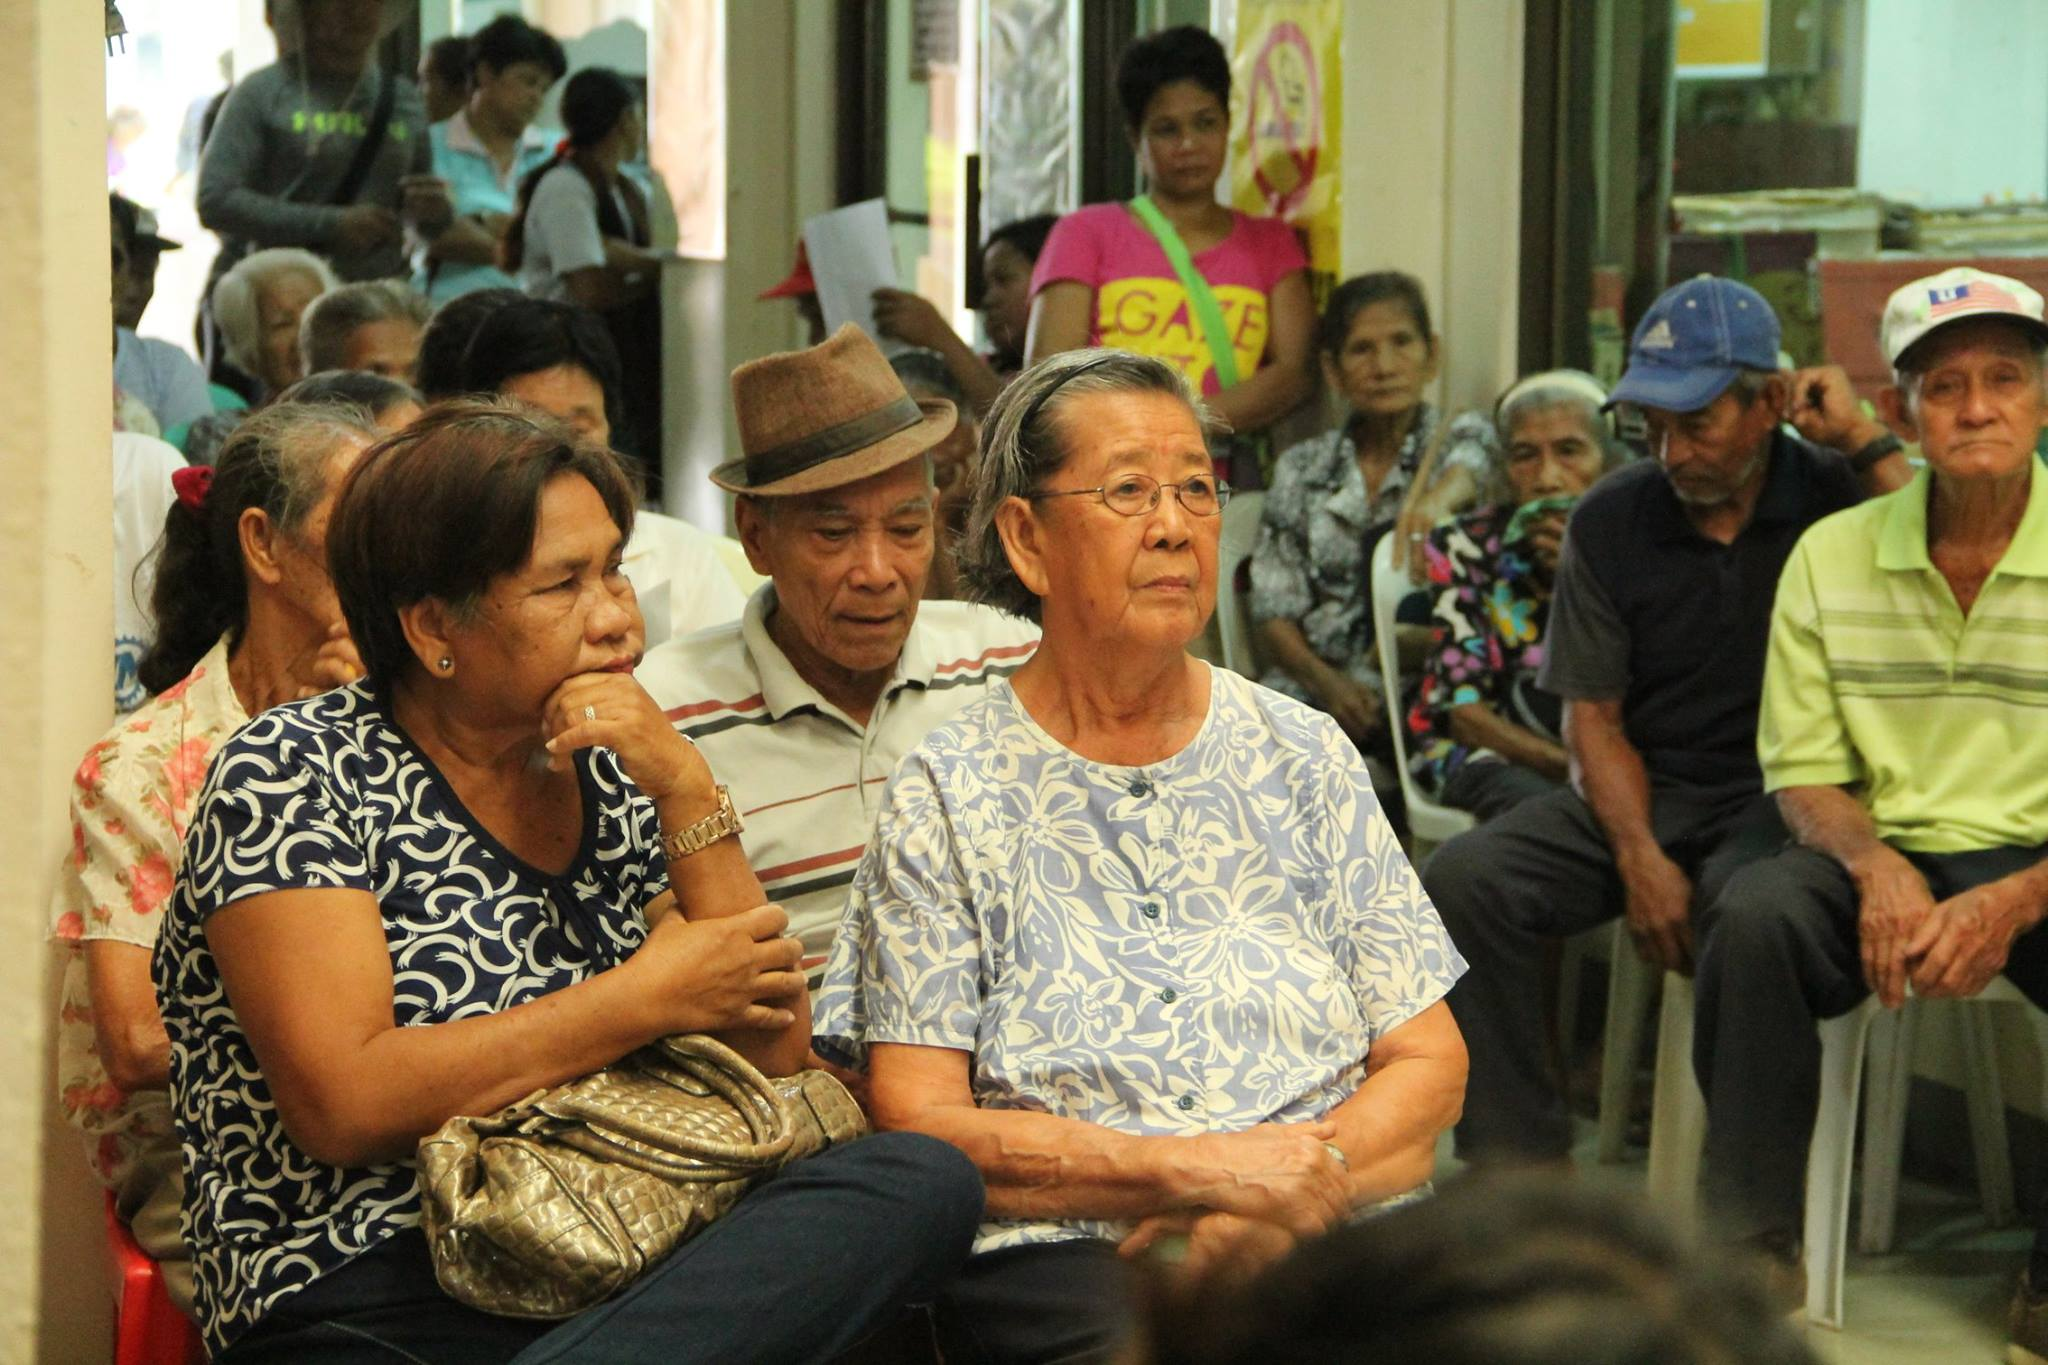 The Department of Social Welfare and Development (DSWD) is planning to provide a monthly stipend to 2.8 million indigent senior citizens this year. (Photo: LGU - Tacurong/Facebook)